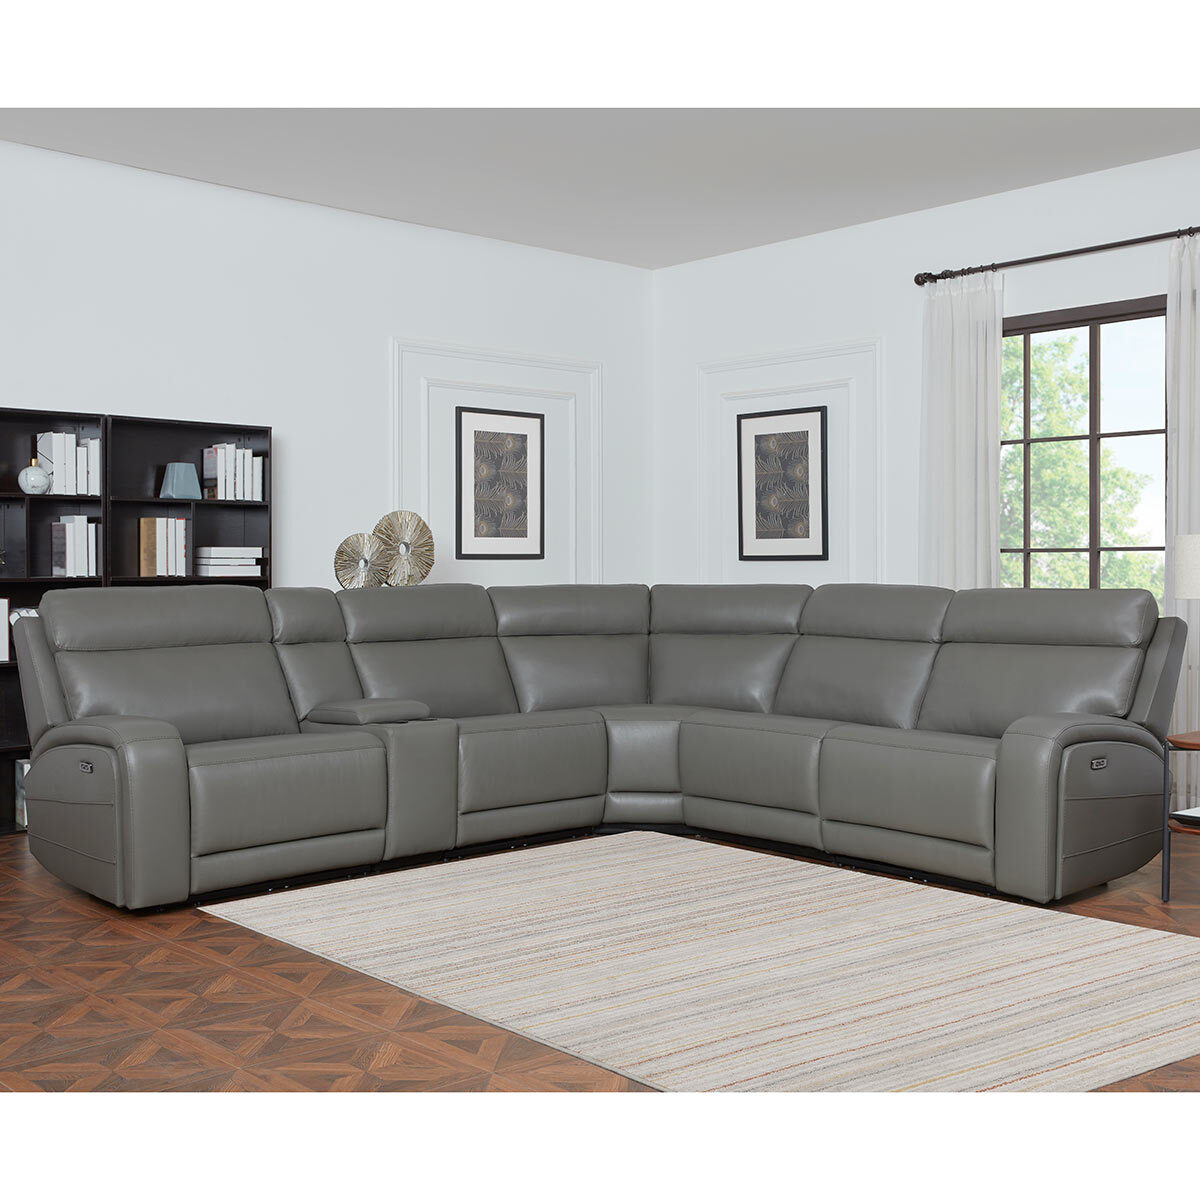 kuka paisley leather power reclining sectional sofa with power headrests costco uk